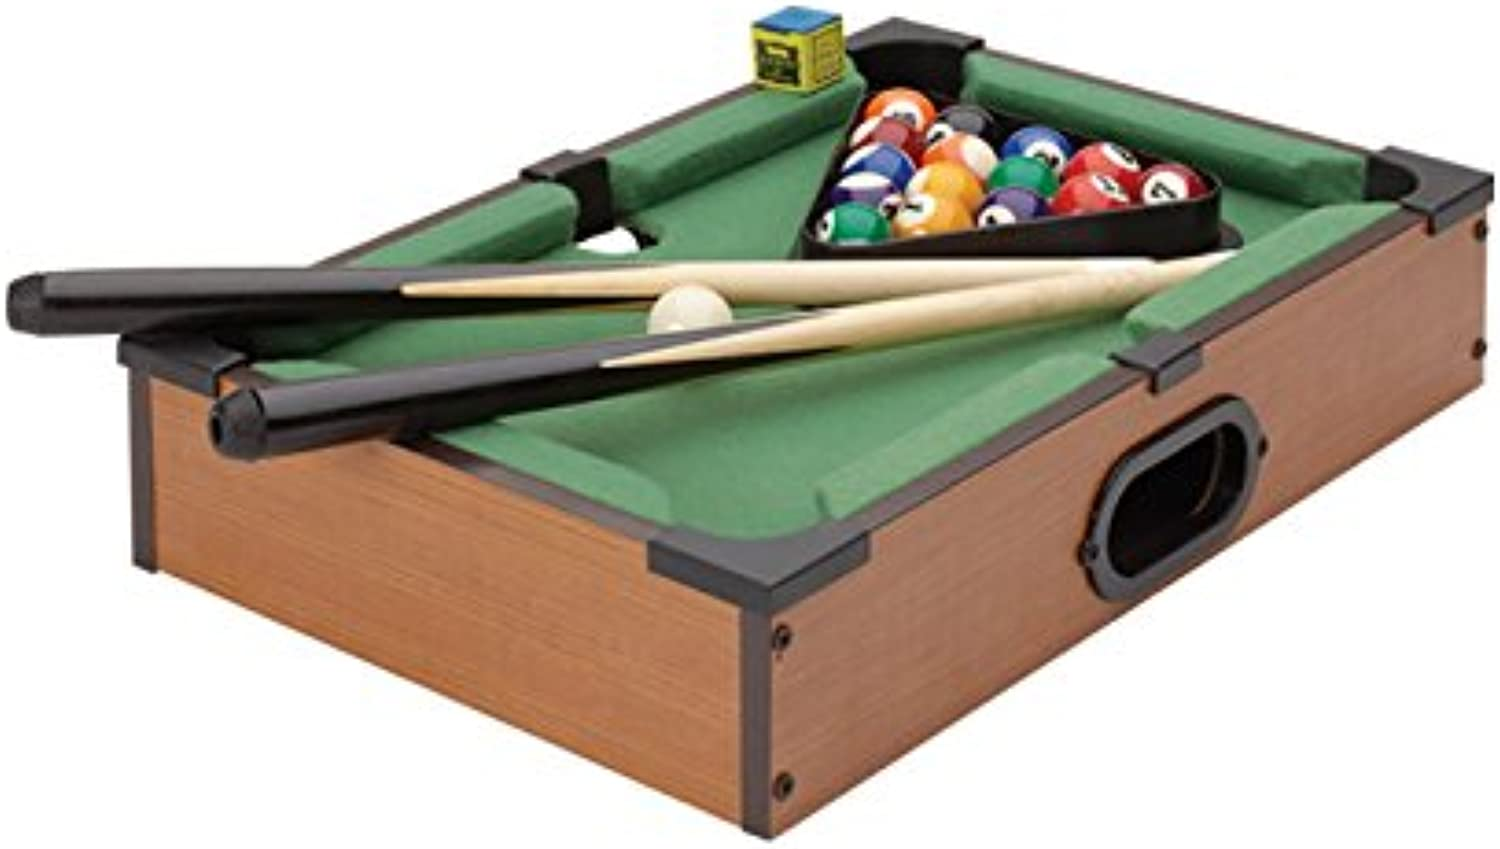 Torre & Tagus Torre & Tagus Retro Tabletop Mini Billiards Game, 940122, Plastic, MDF, Multi-colord, 14x2.75x9.25